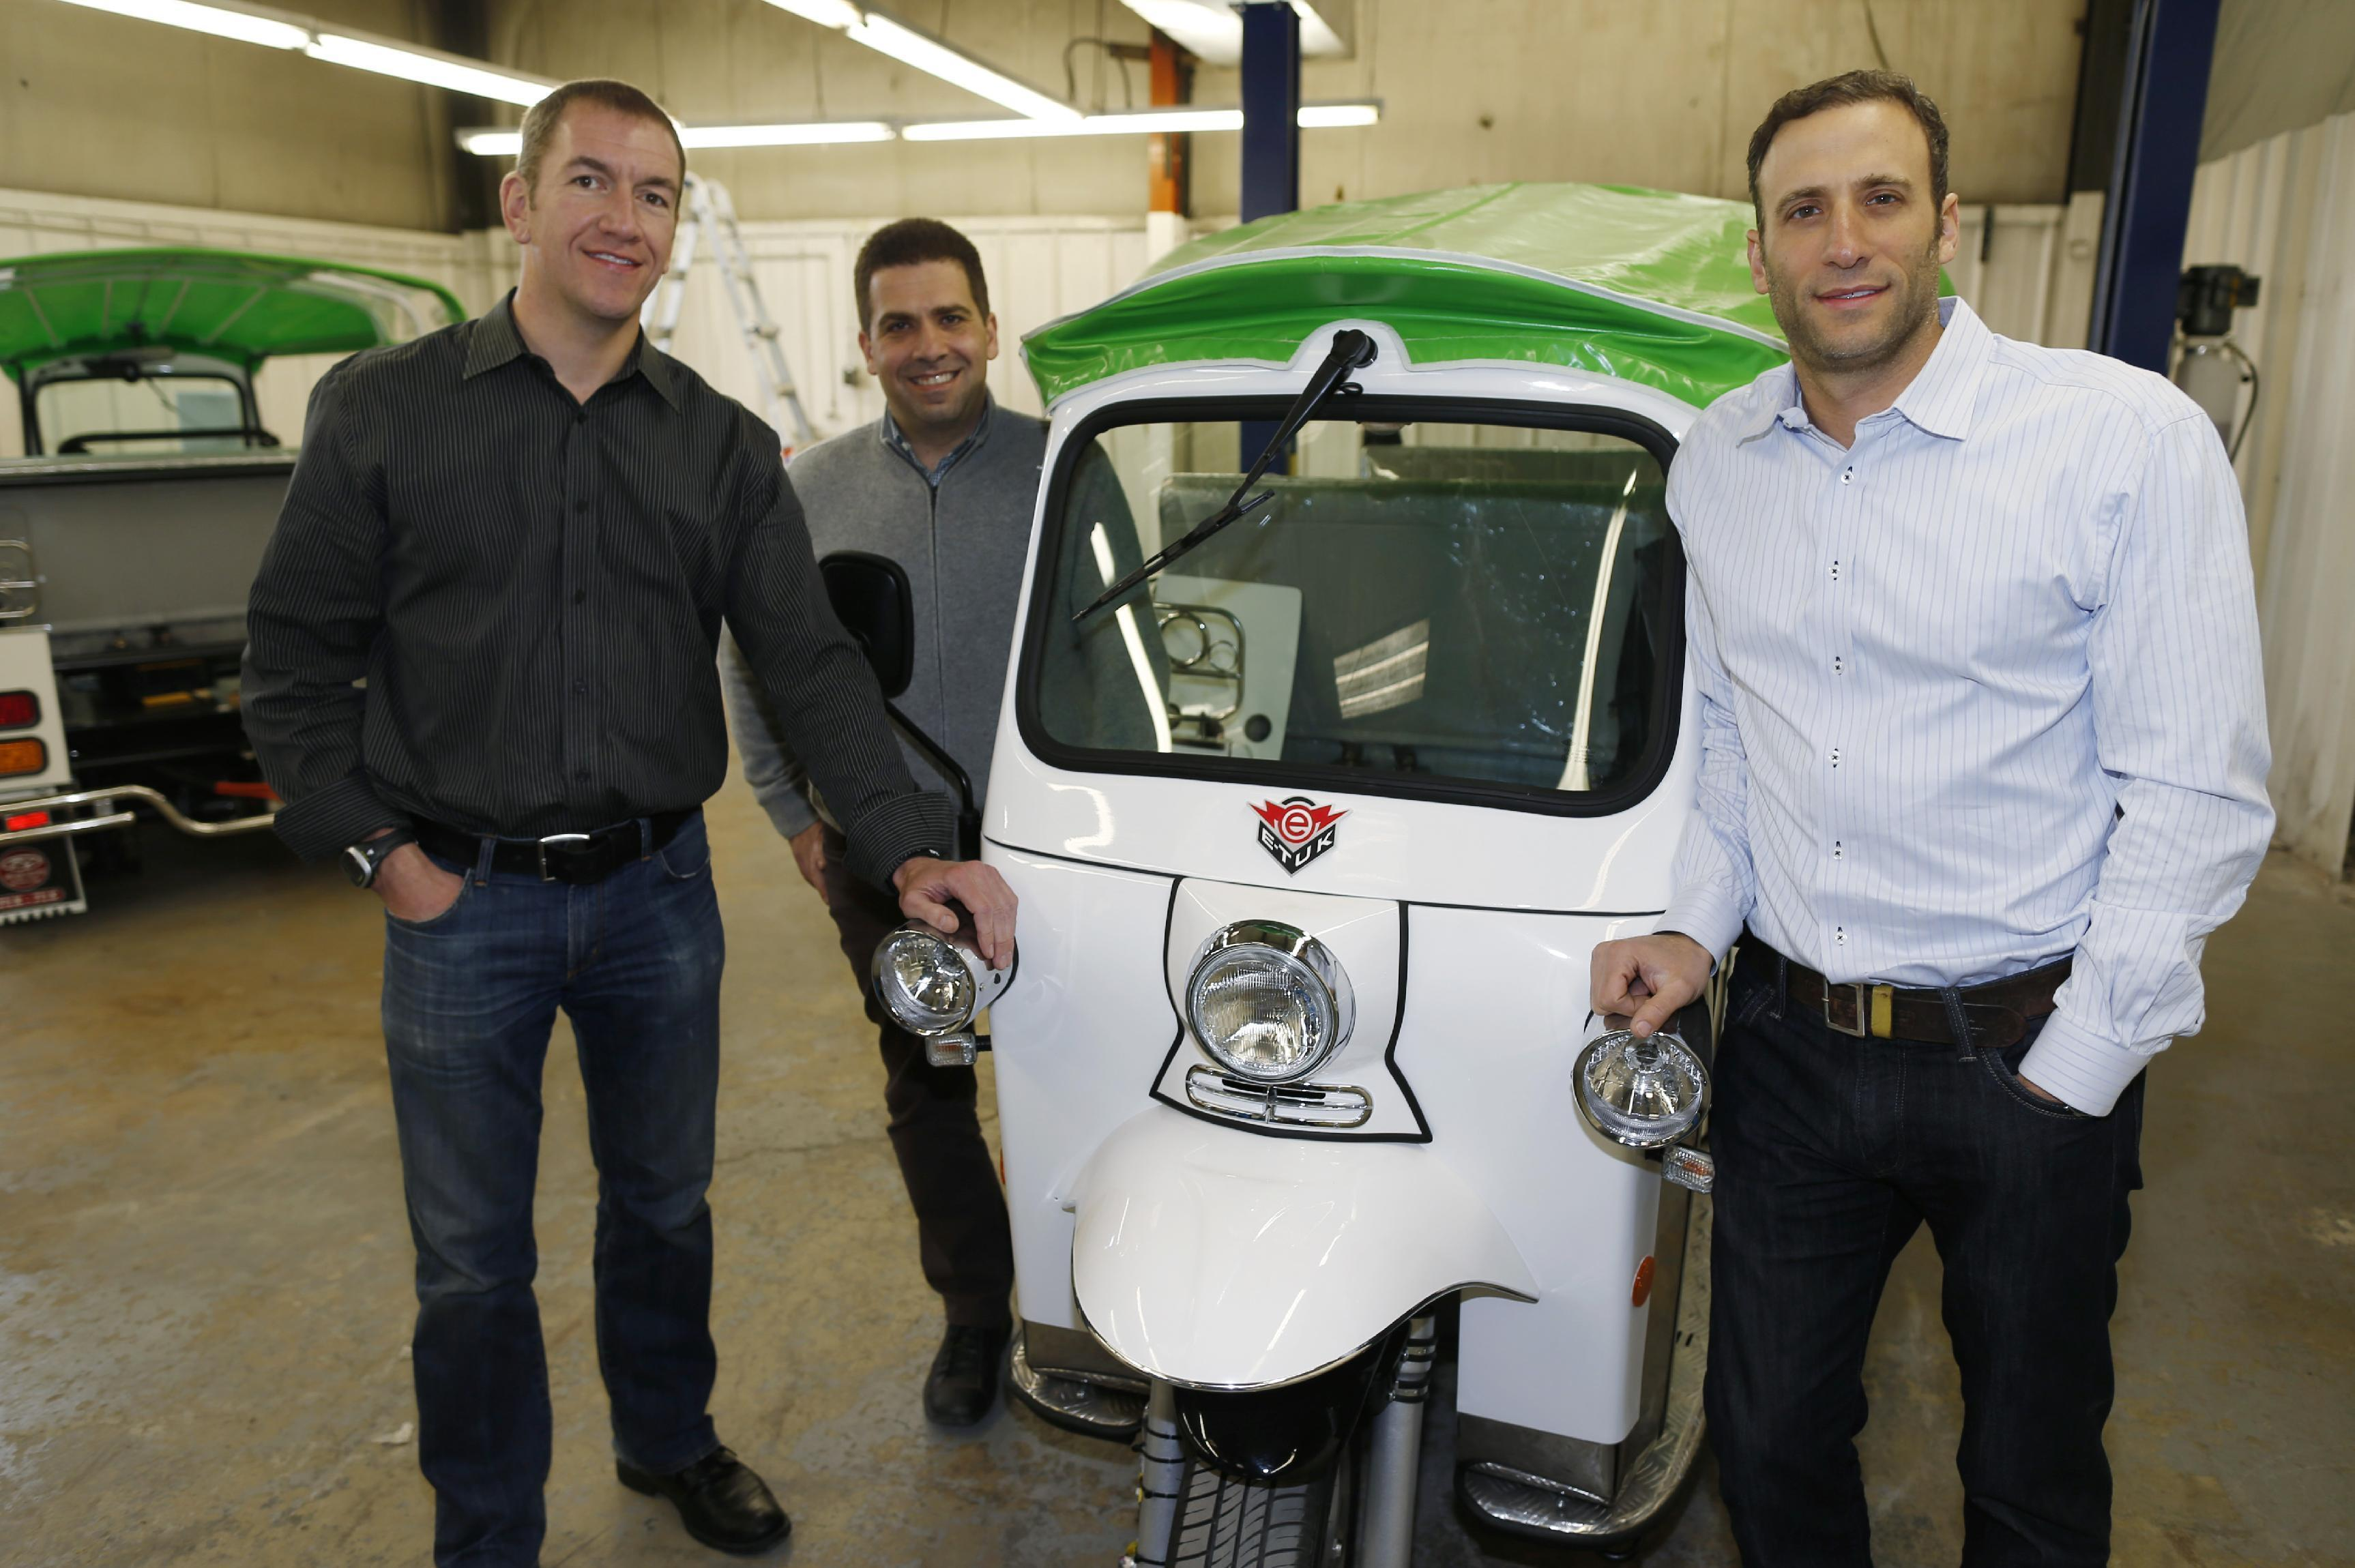 Tuk-tuk taxi maker aims to make inroads in US